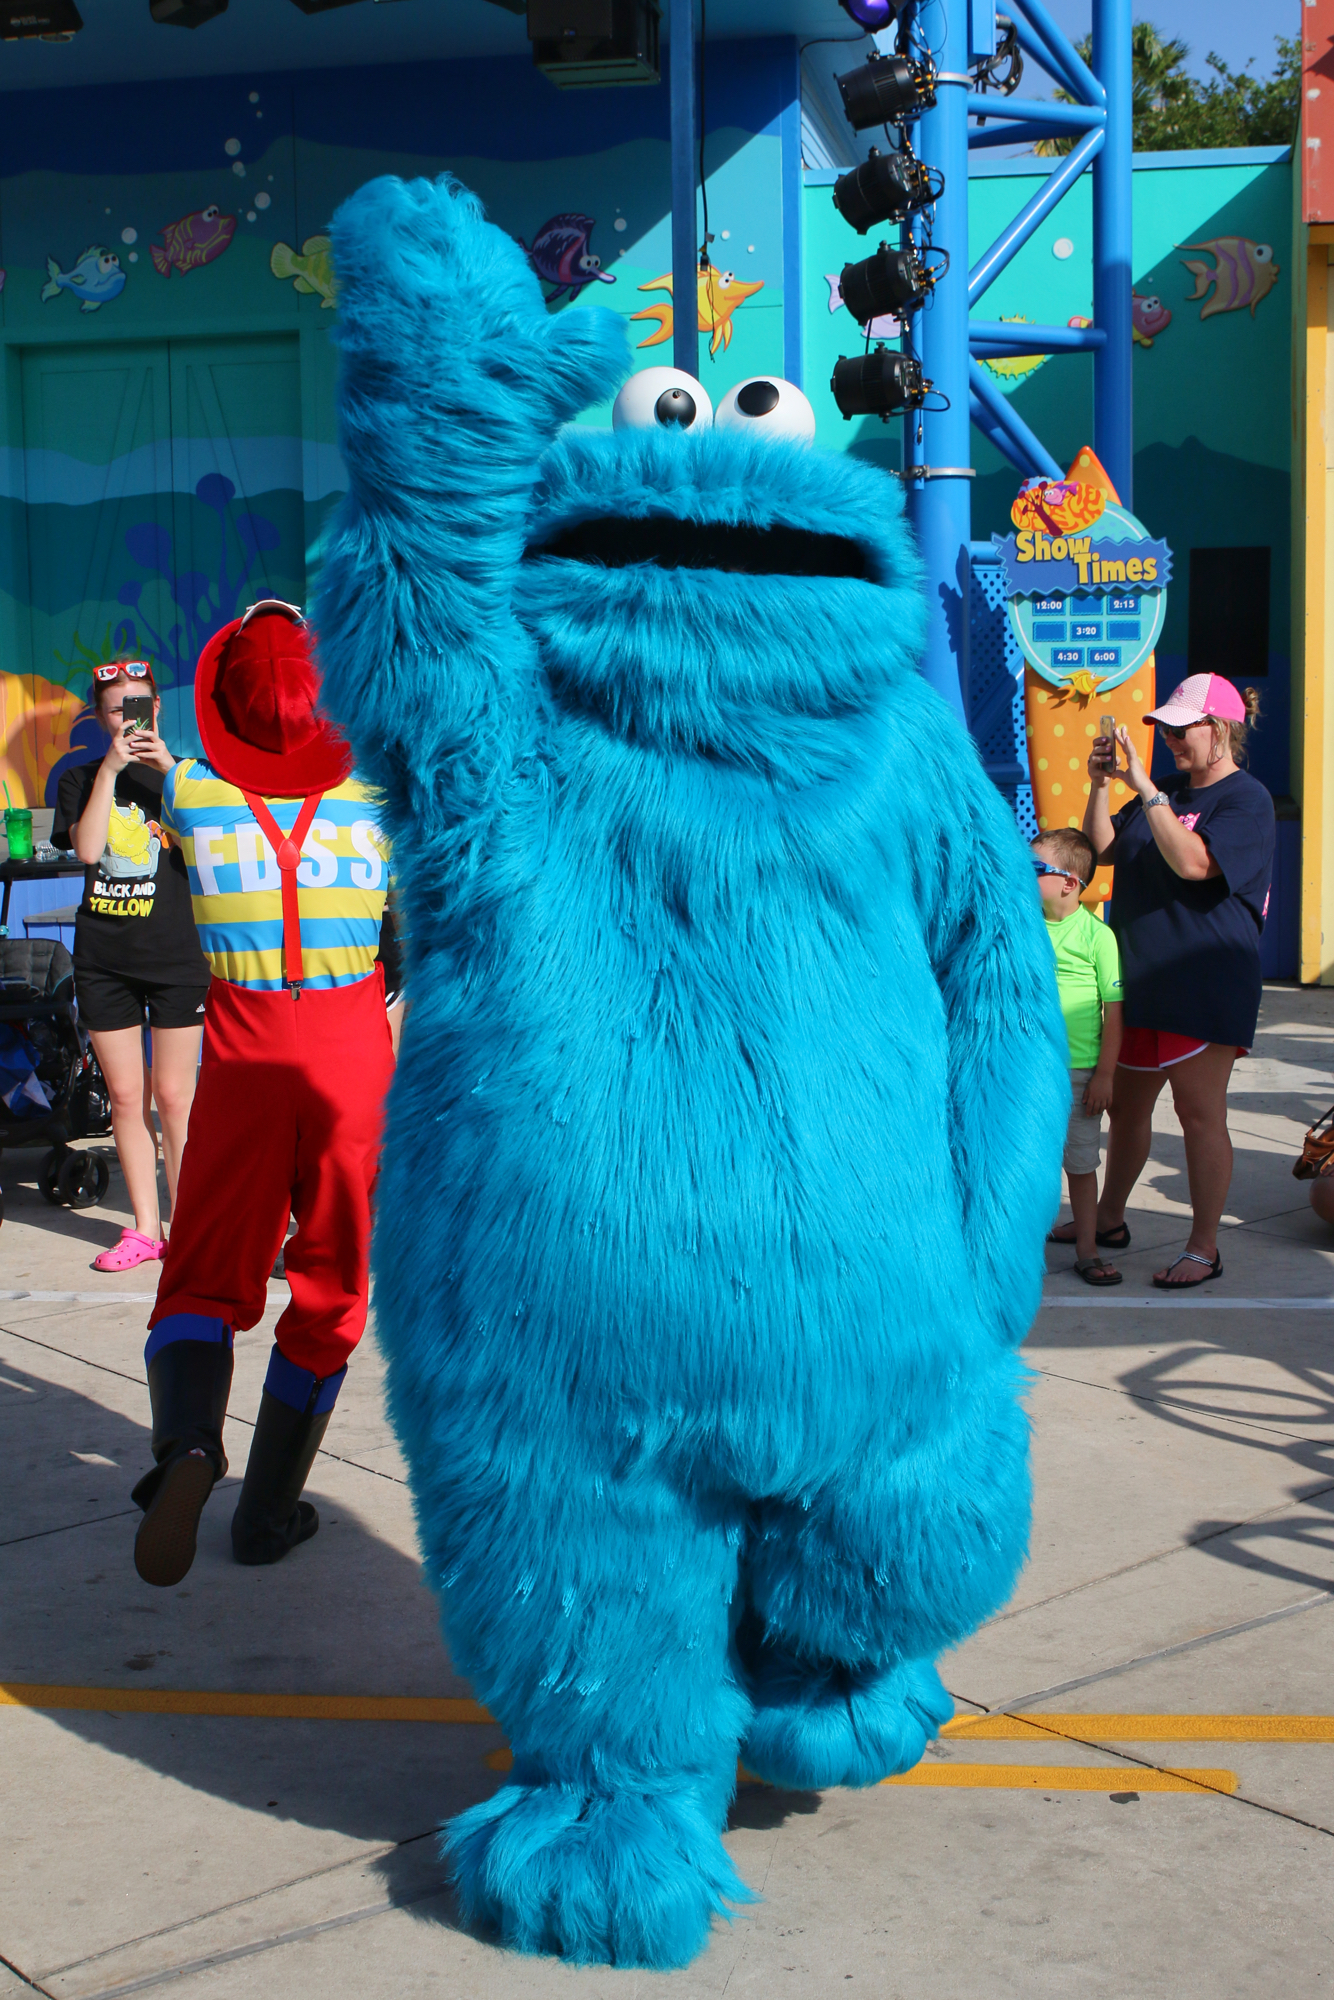 Cookie Monster dancing at Sesame Street Party Parade